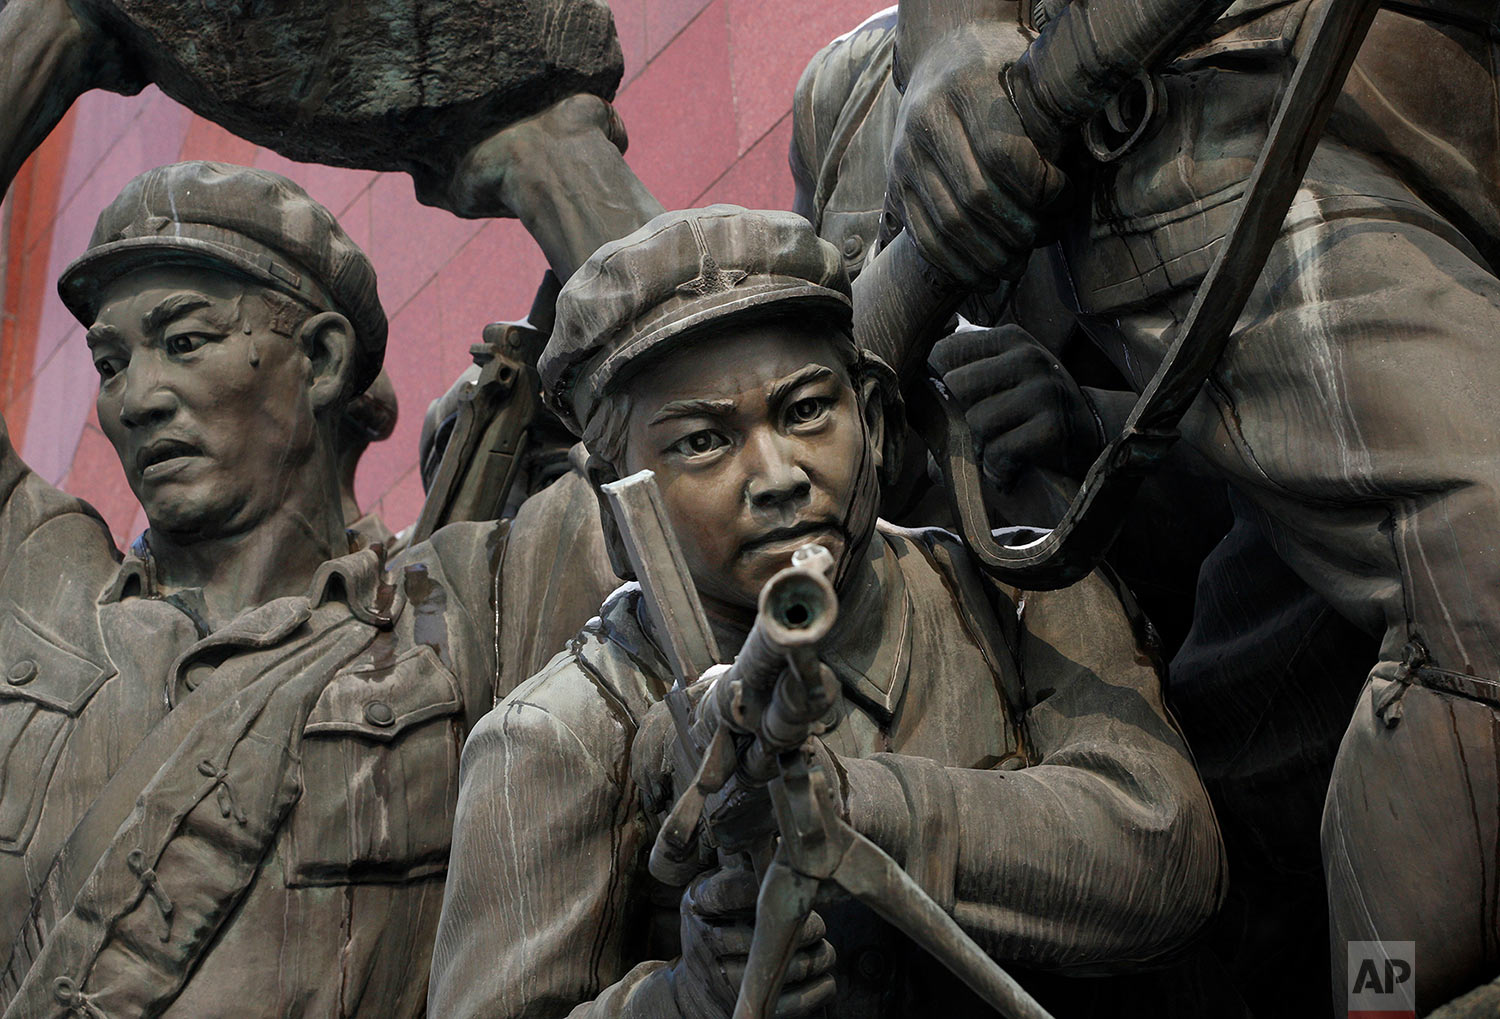 A statue of Korean soldiers stands in central Pyongyang, North Korea, on Feb. 26, 2008. (AP Photo/David Guttenfelder)